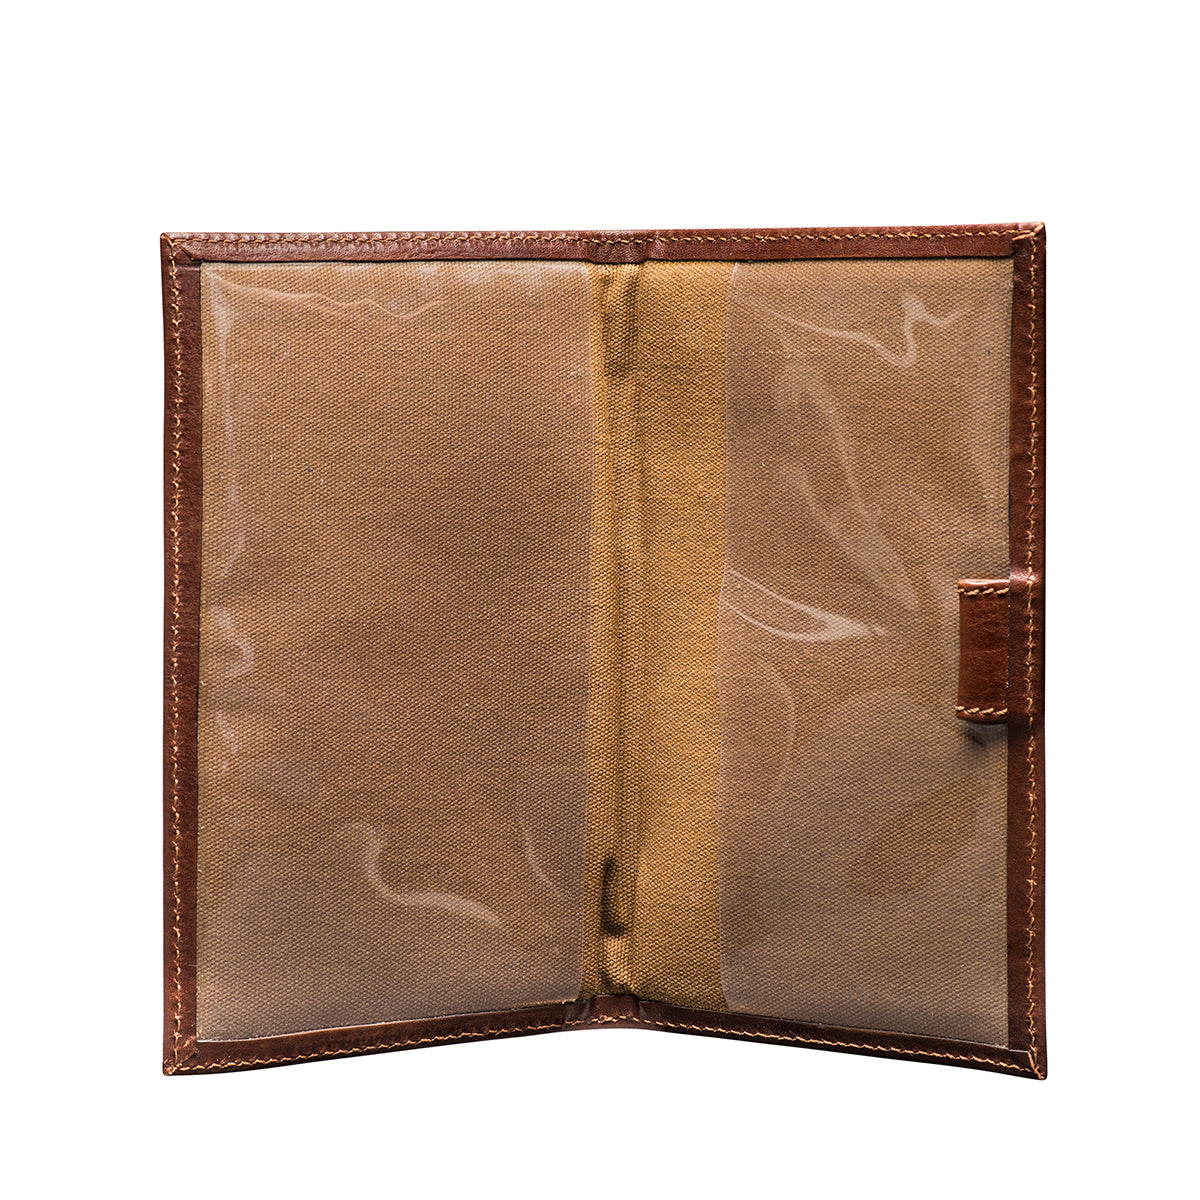 Image 3 of the 'Sestino' Chestnut Veg-Tanned Leather Golf Card Holder